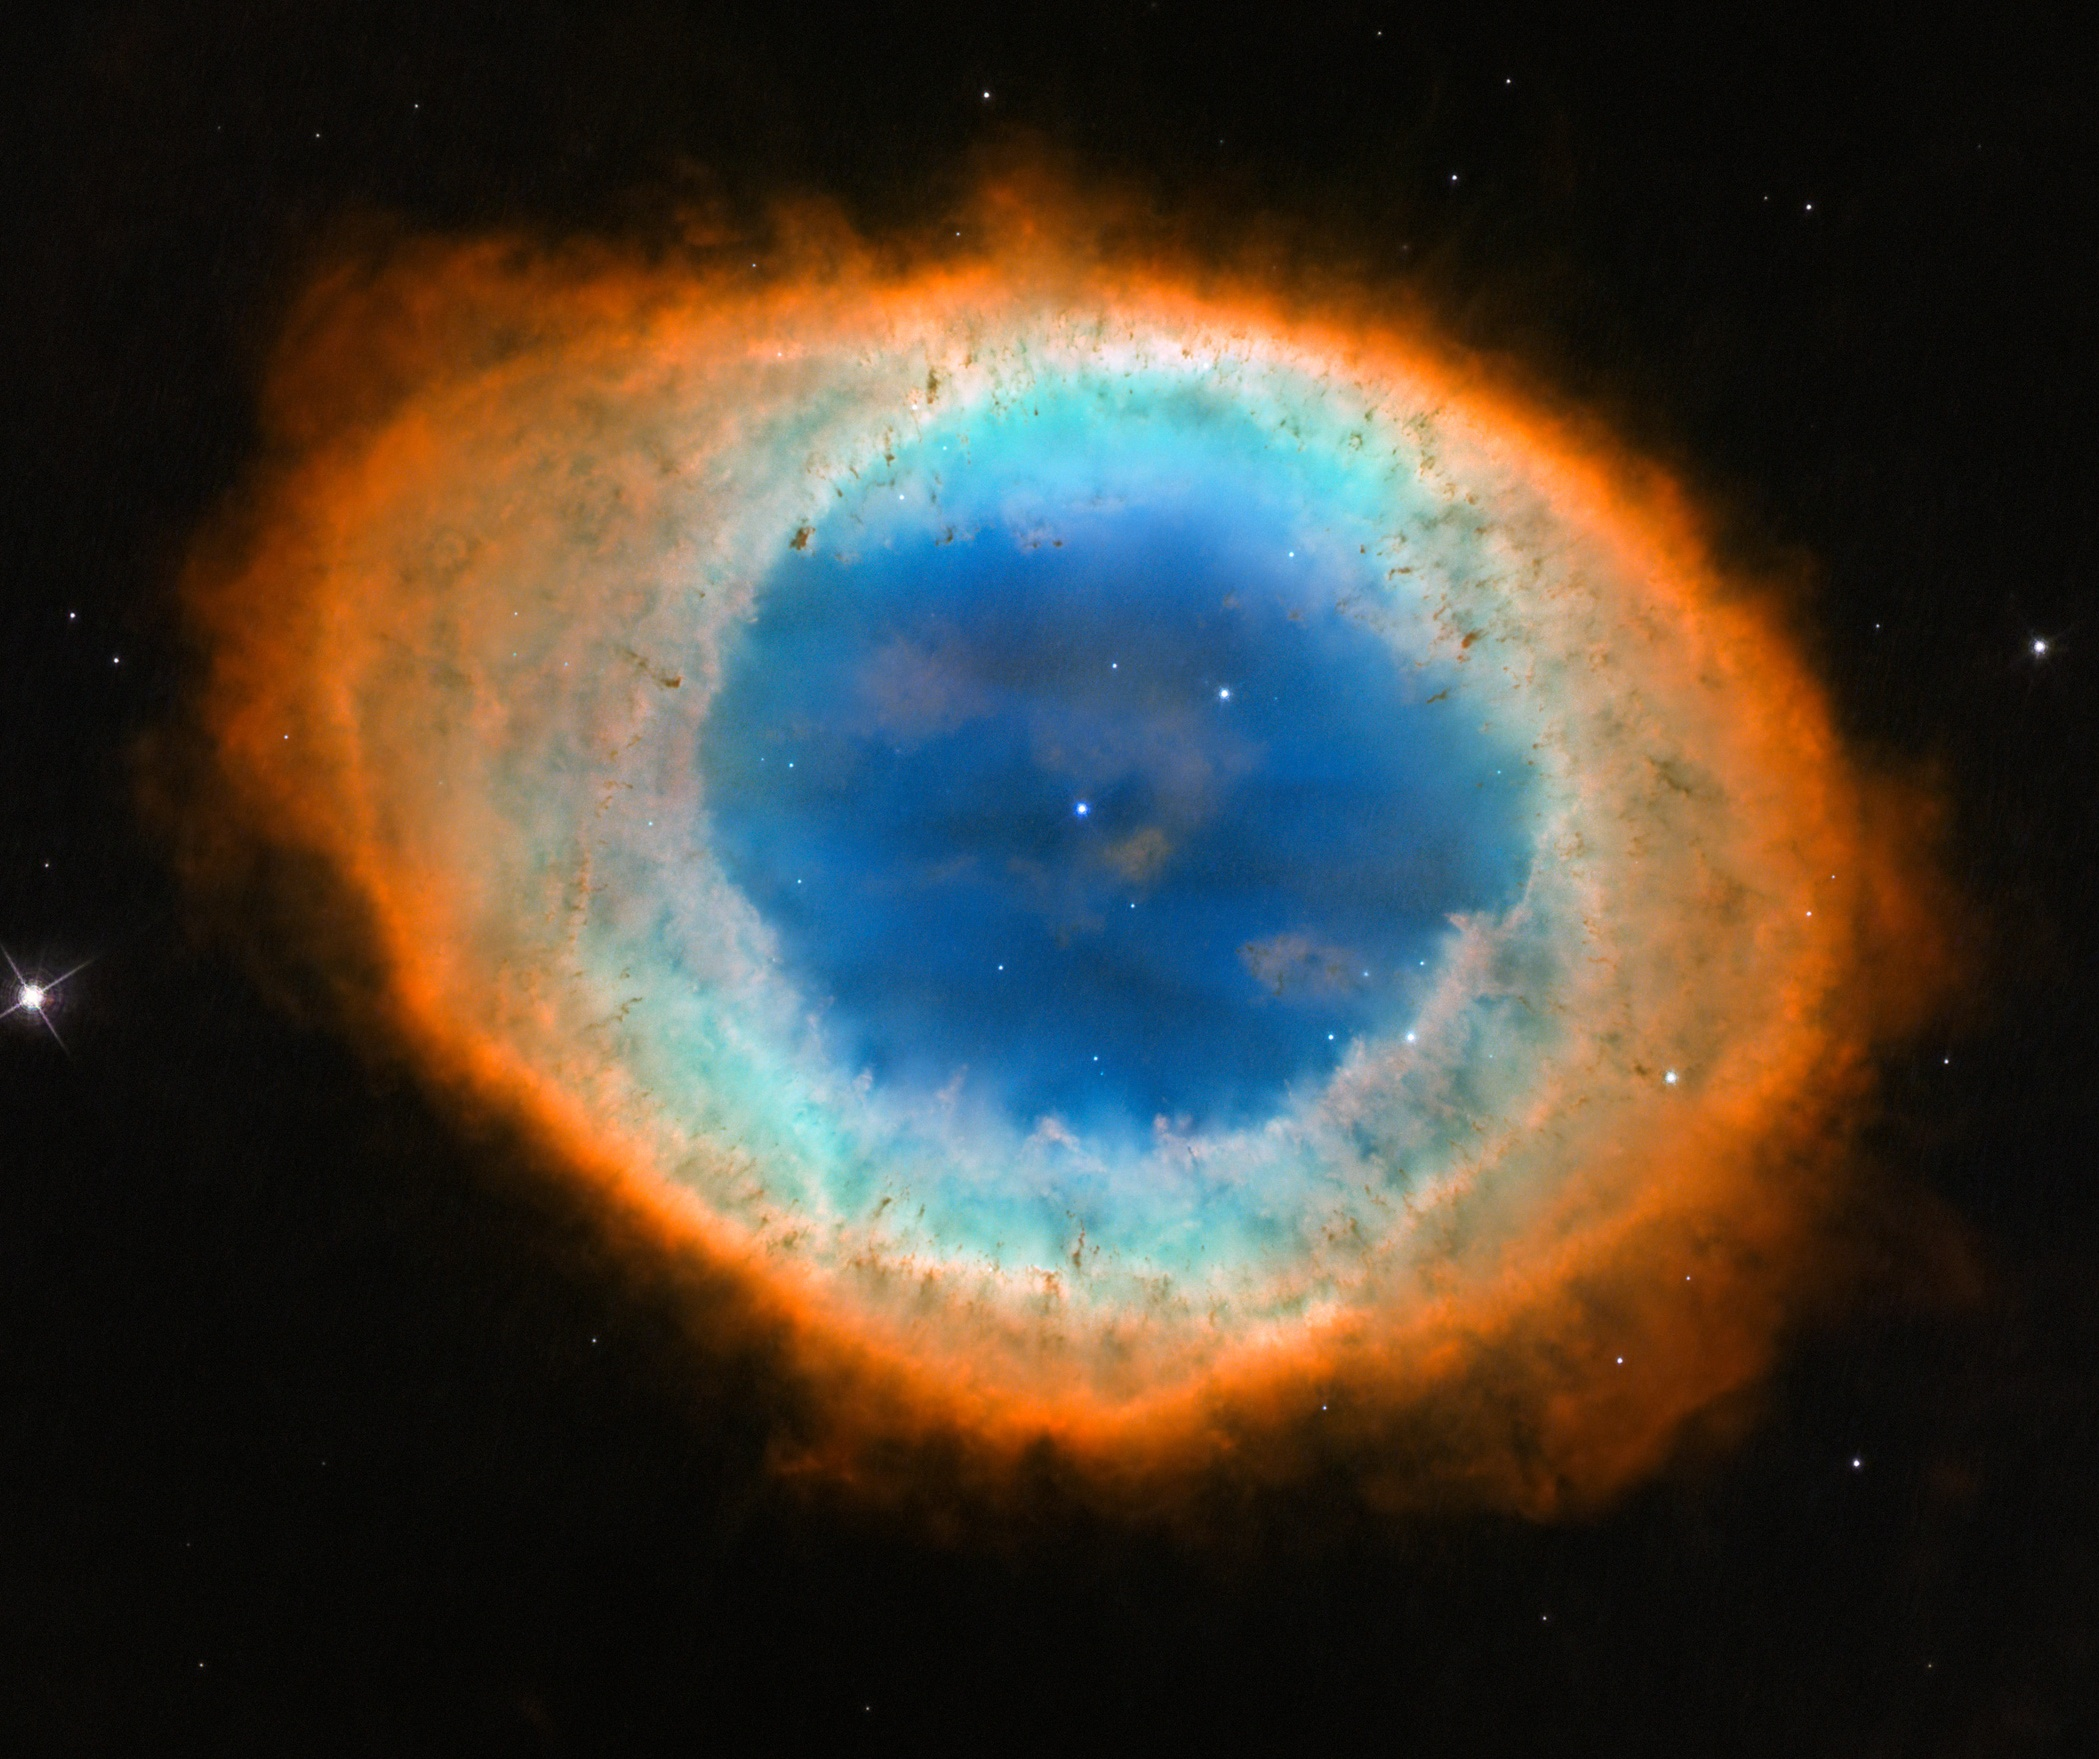 hubble universe hd - photo #16